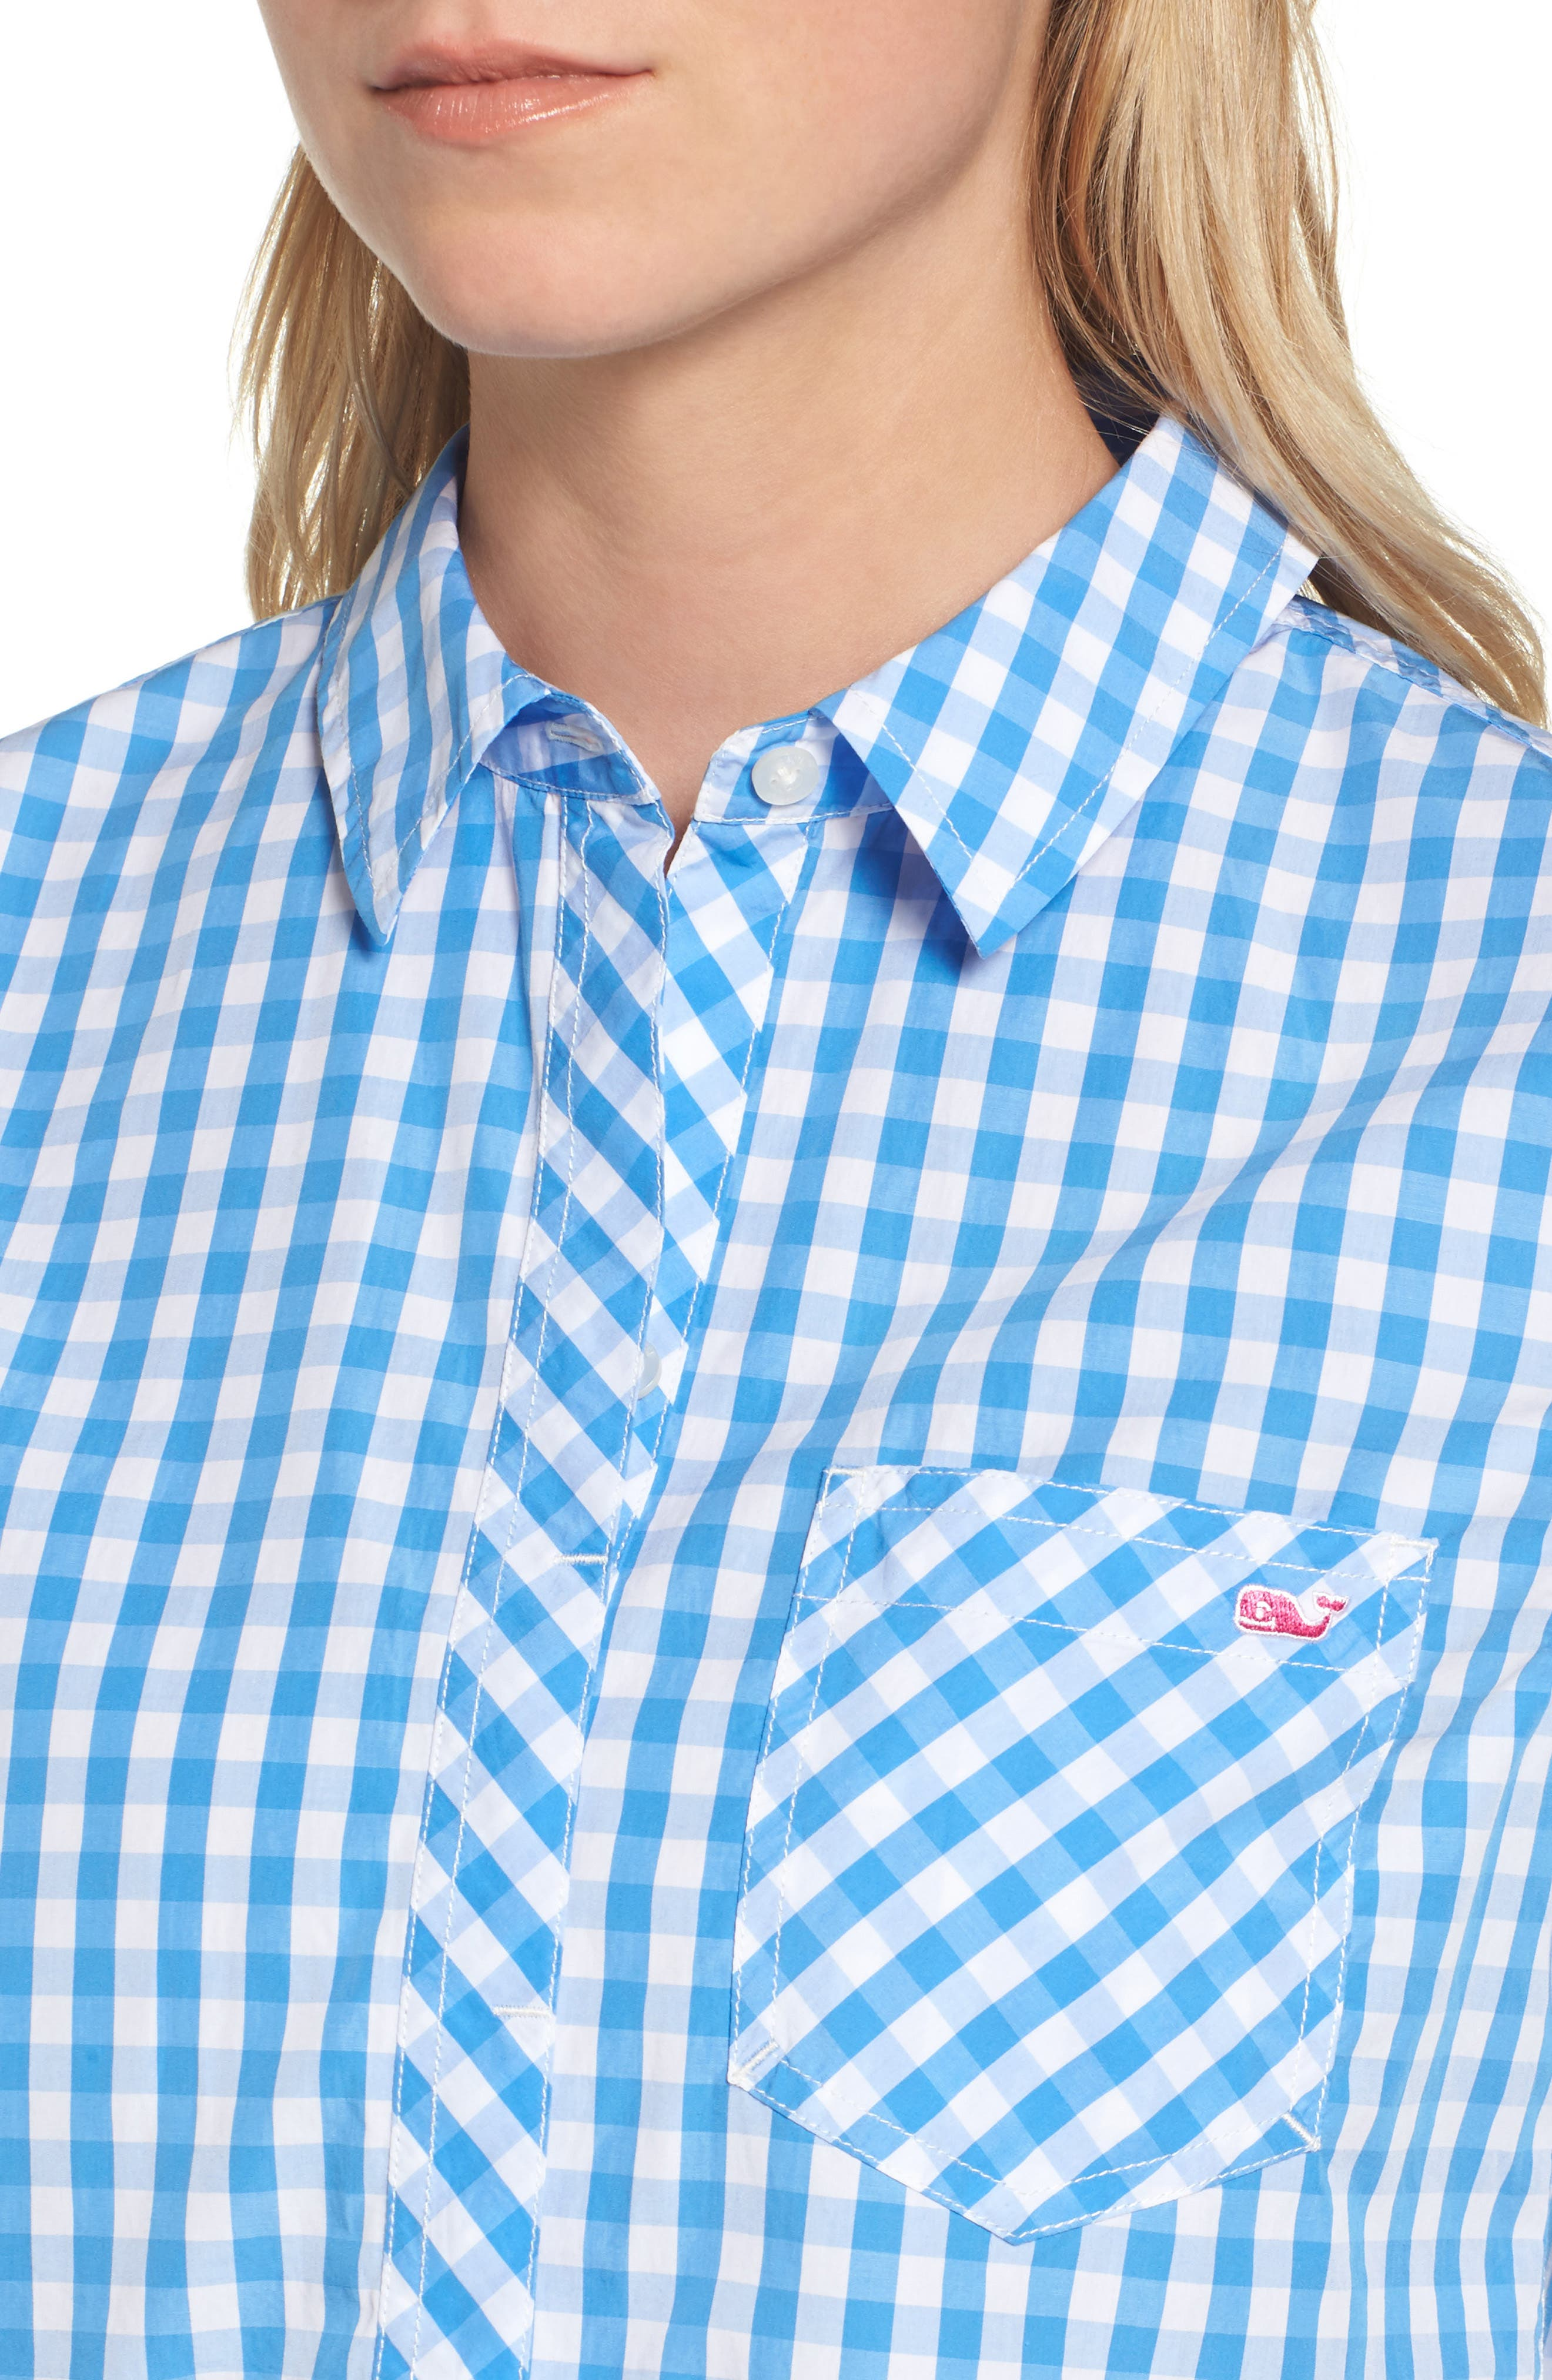 Seabreeze Gingham Pocket Shirt,                             Alternate thumbnail 4, color,                             464